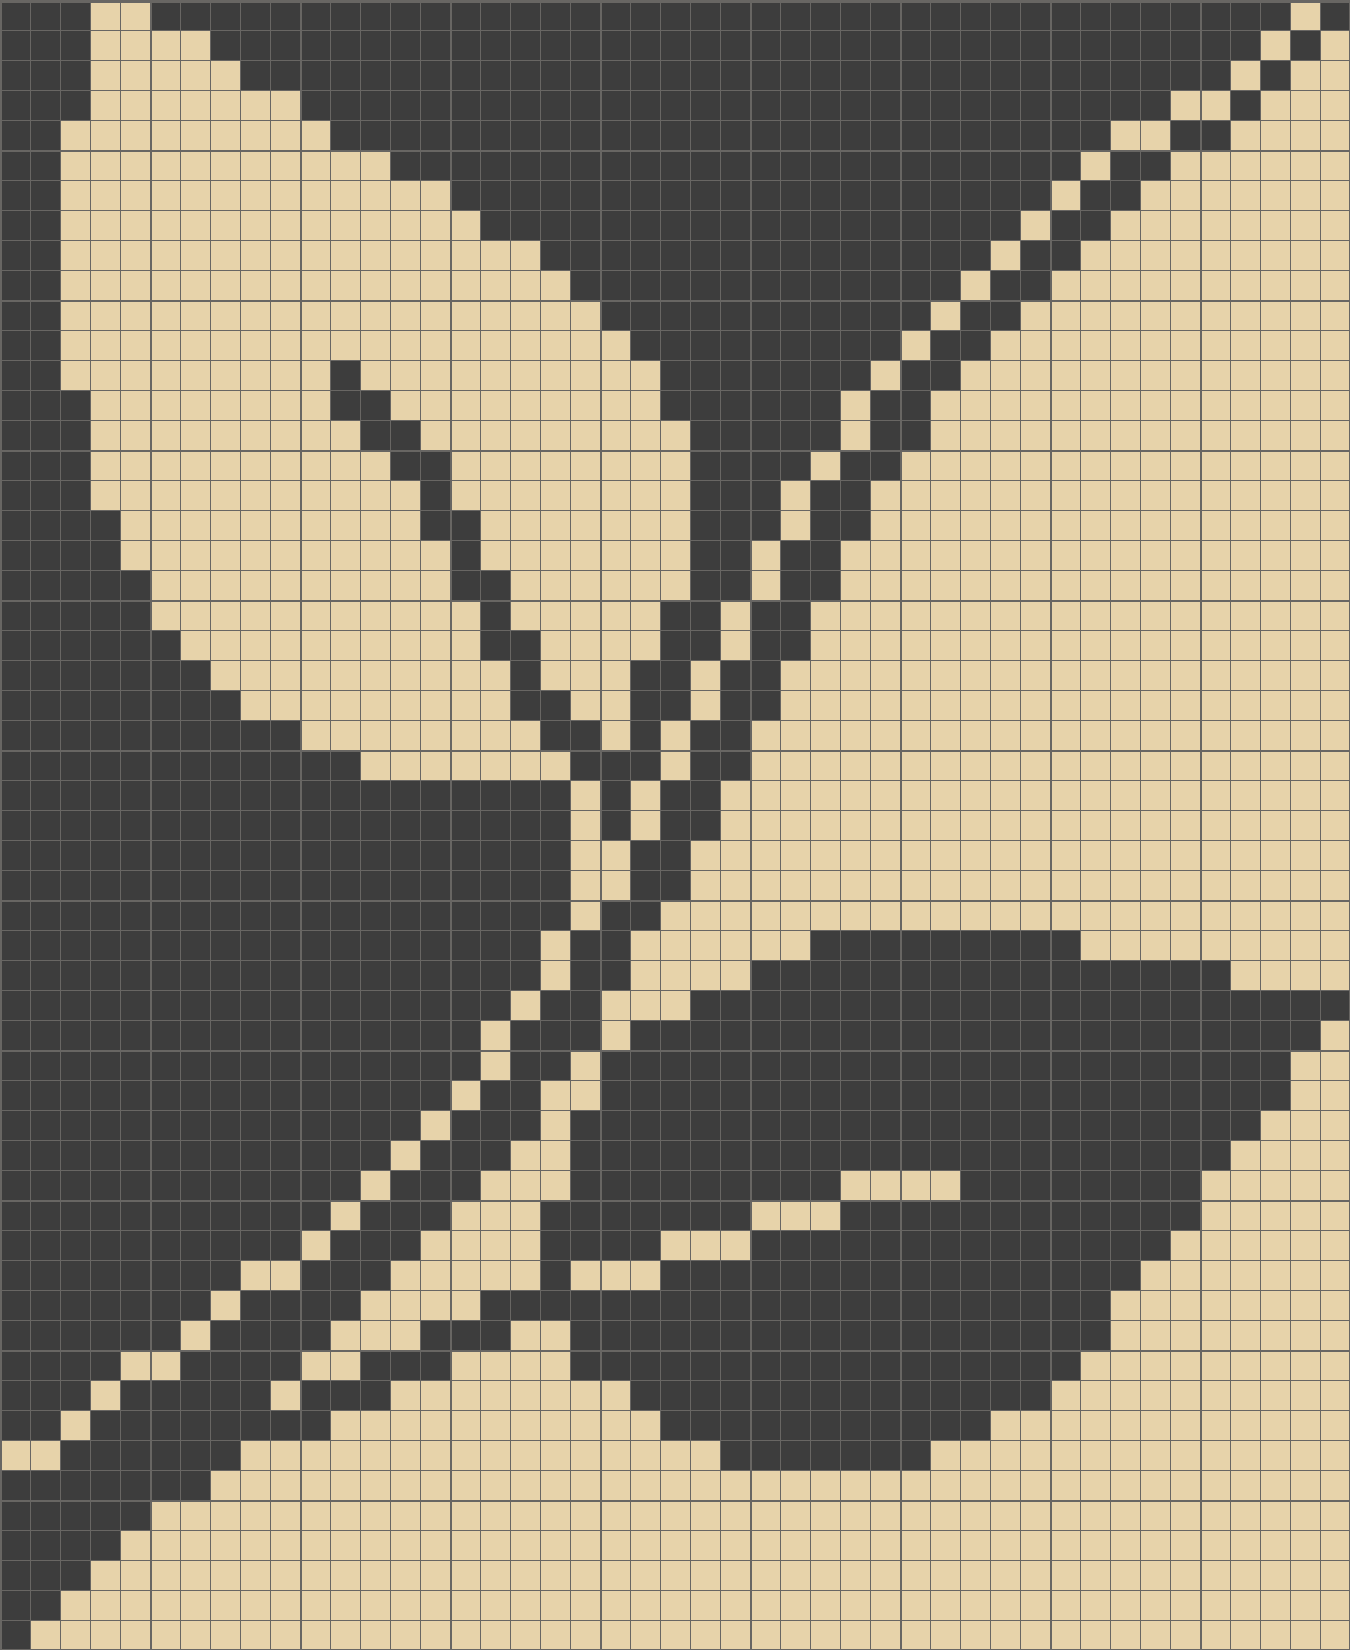 Black and white leaves pattern / chart for cross stitch, knitting ...